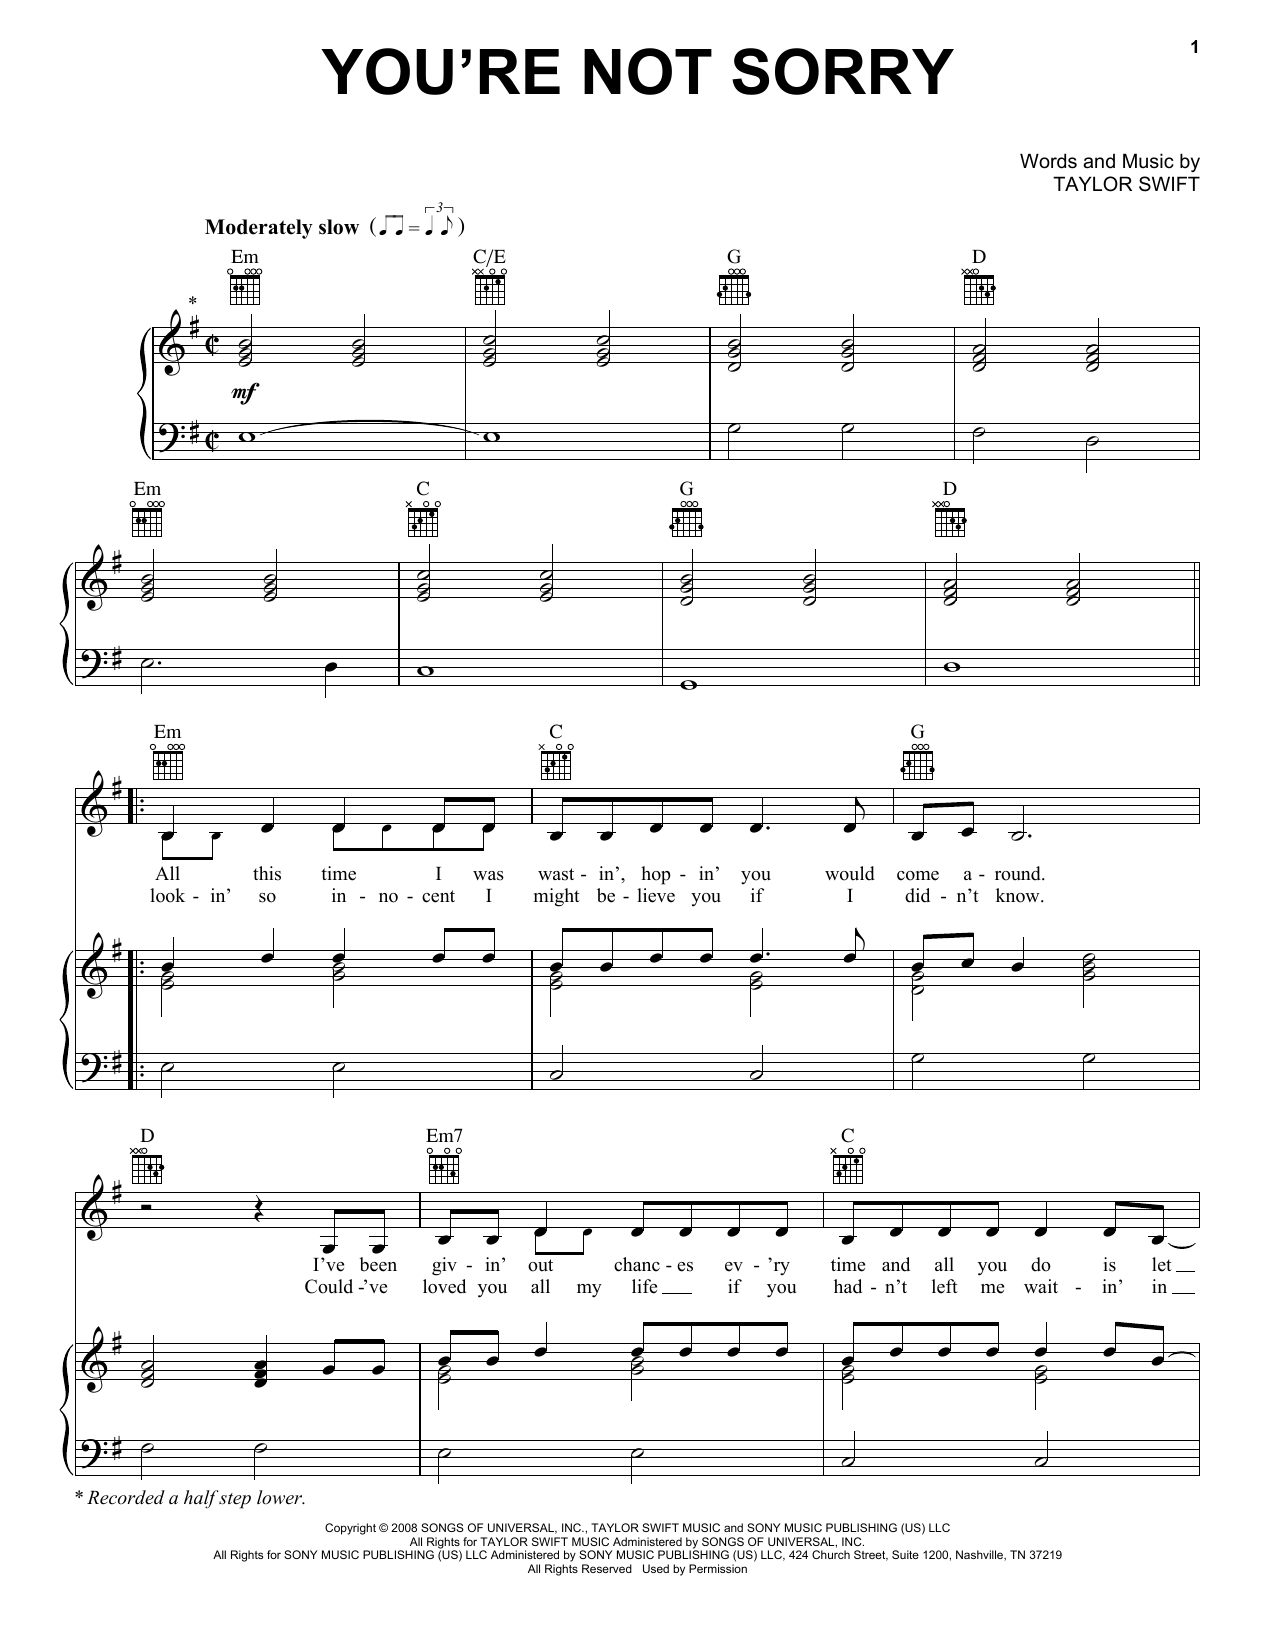 Guitar guitar chords sorry : You're Not Sorry sheet music by Taylor Swift (Piano, Vocal ...